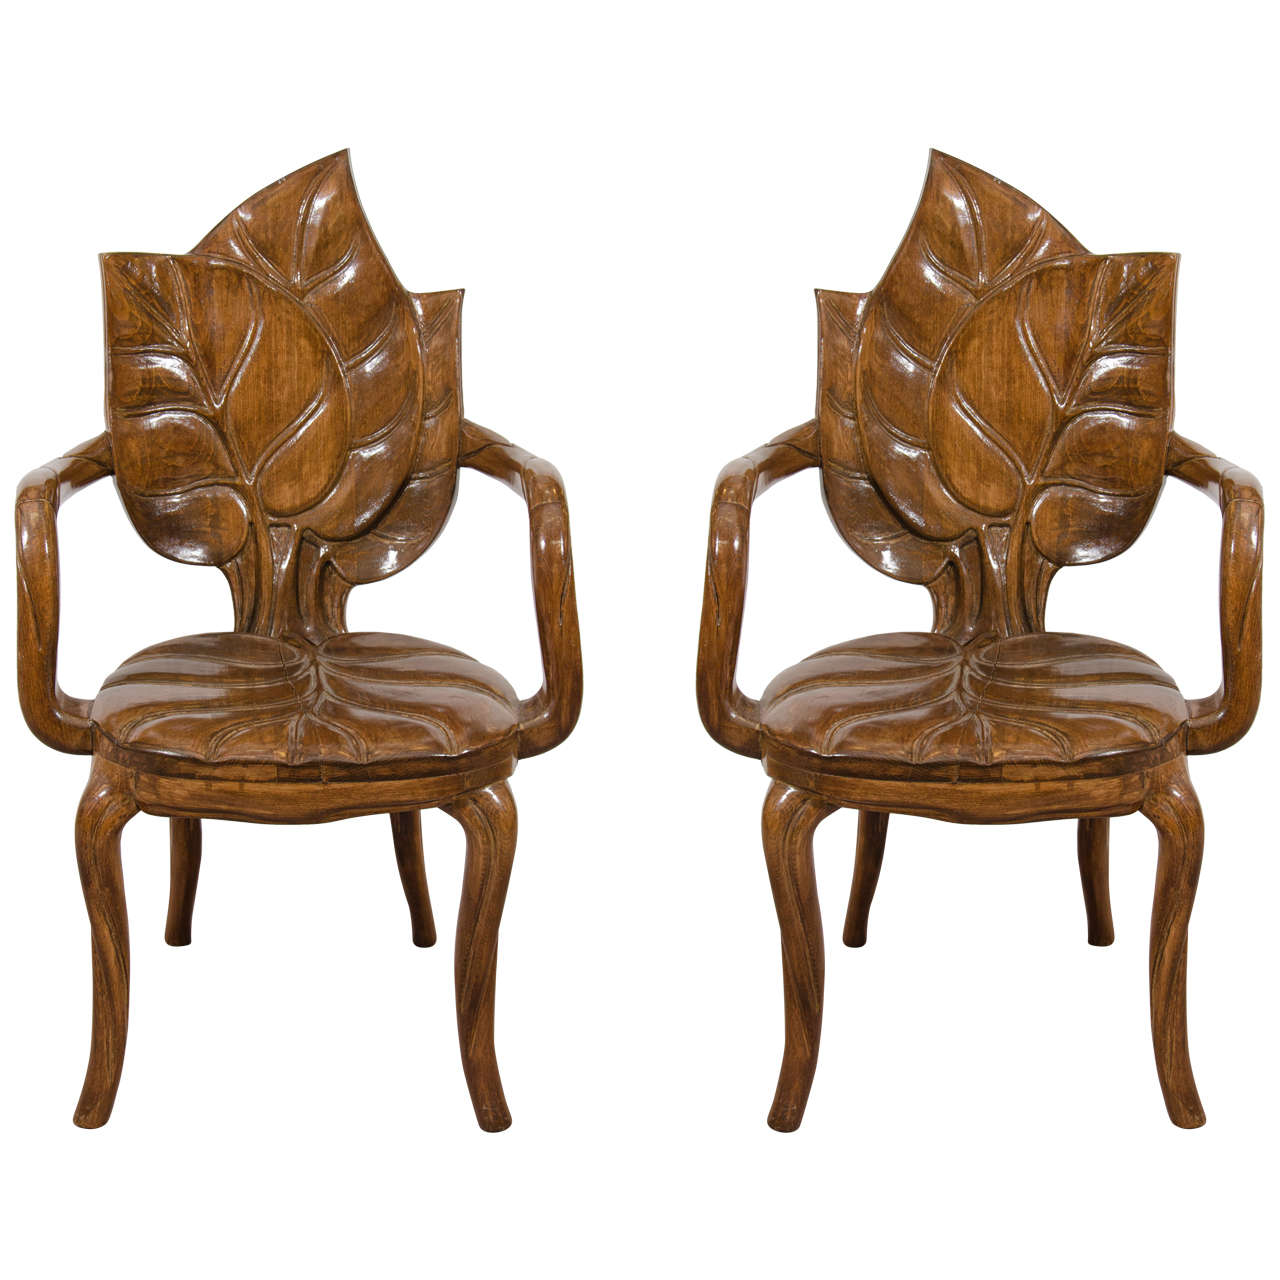 Artistic Chairs Art Nouveau Style Pair Of Sculptural Leaf Motif Armchairs